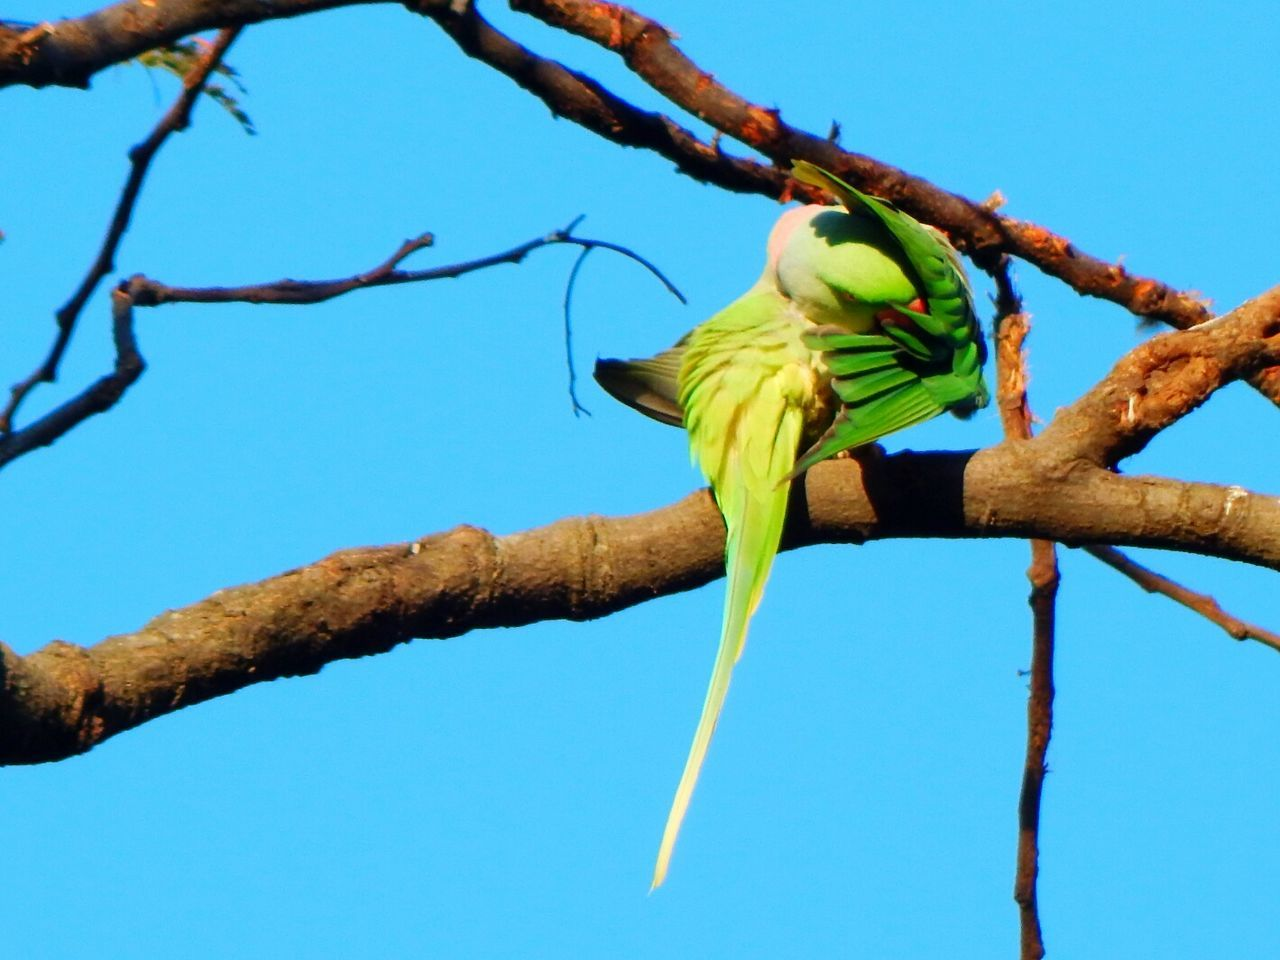 low angle view, branch, tree, perching, blue, animal themes, animals in the wild, day, bird, clear sky, no people, outdoors, nature, beauty in nature, animal wildlife, bare tree, parrot, sky, close-up